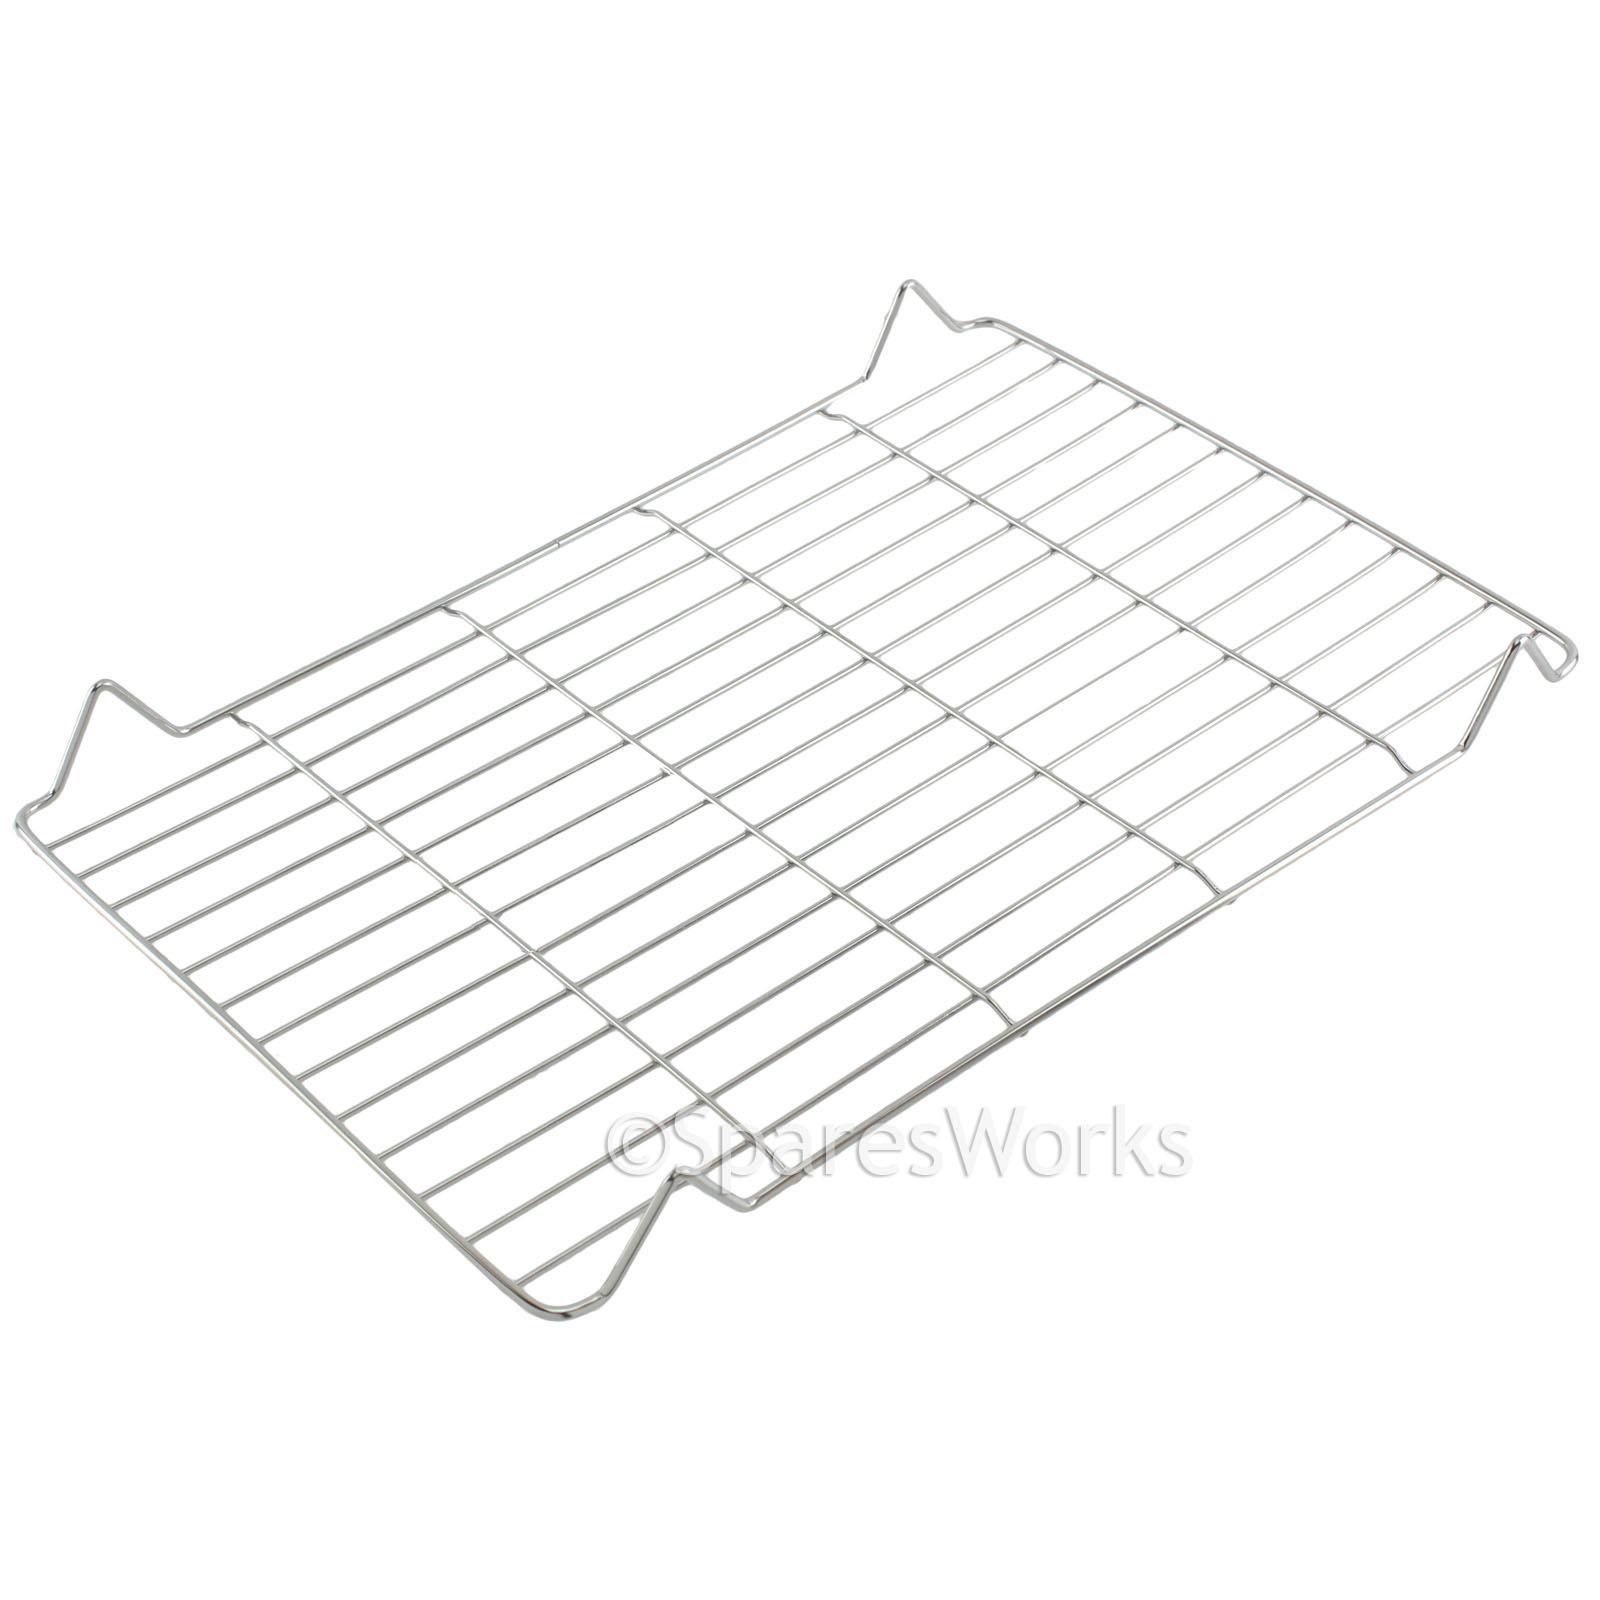 Small Stainless Steel Grill Pan Tray Rack for DeLonghi